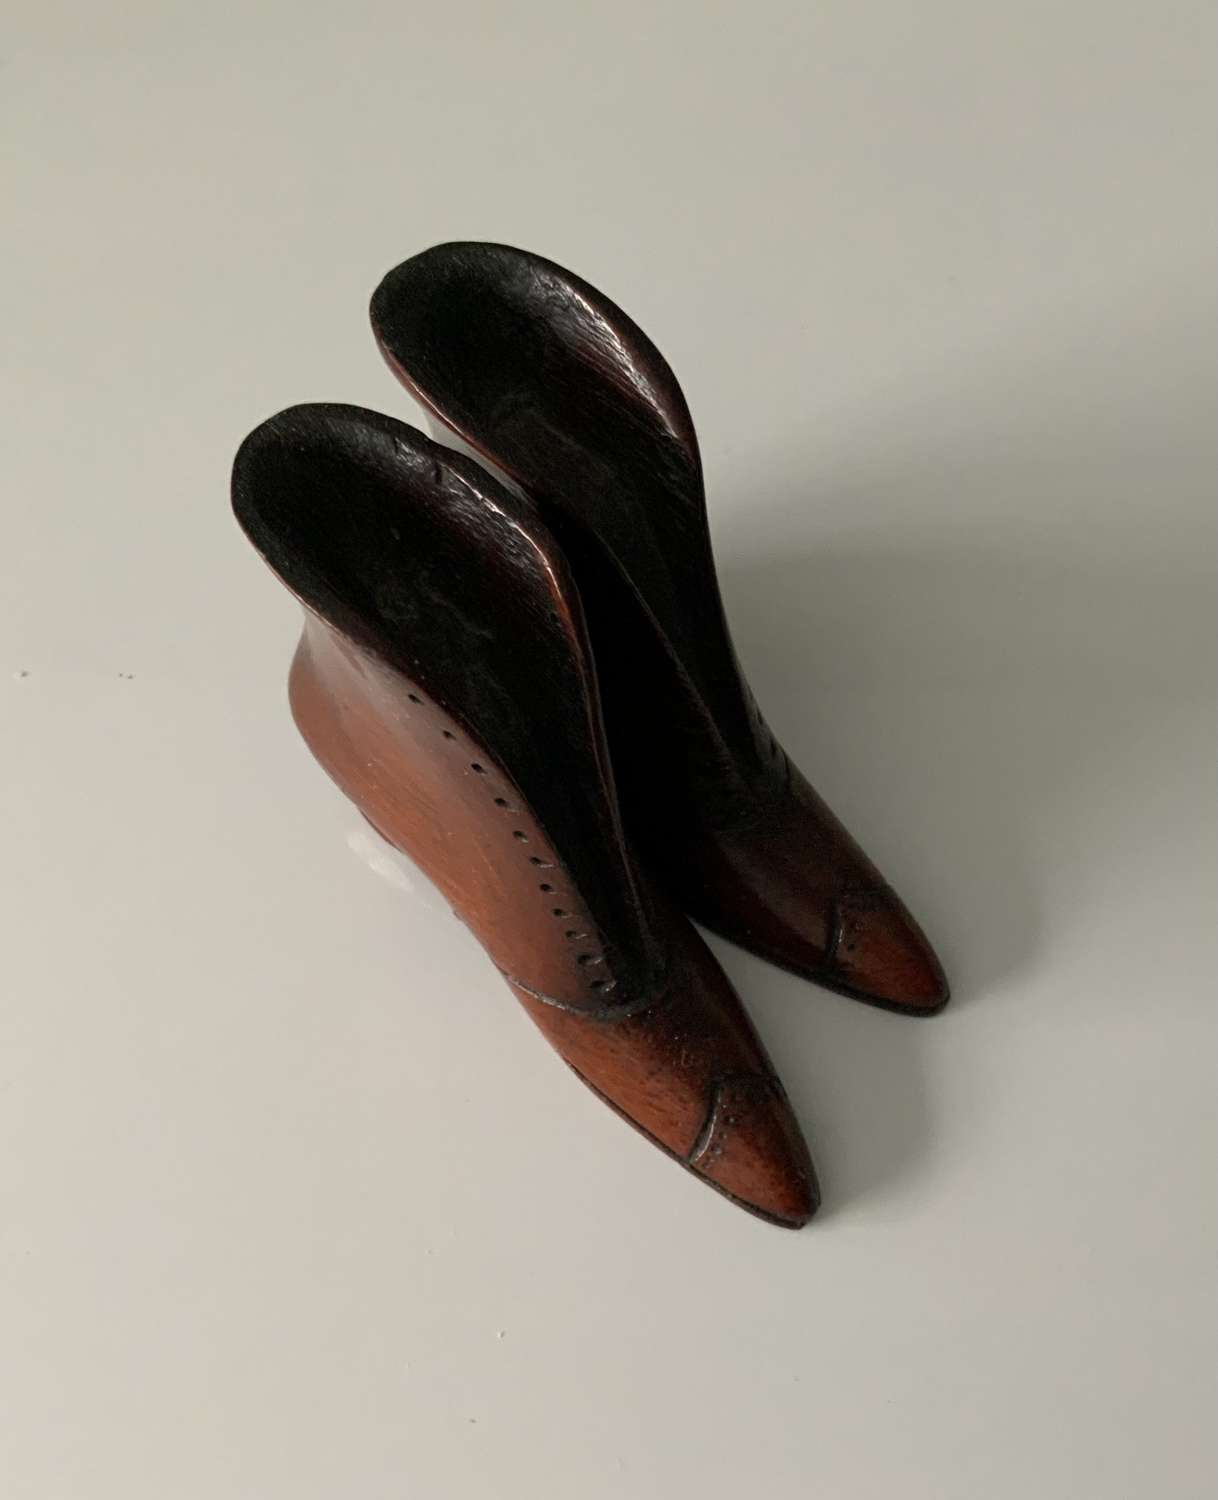 Stunning pair of miniature wooden shoes